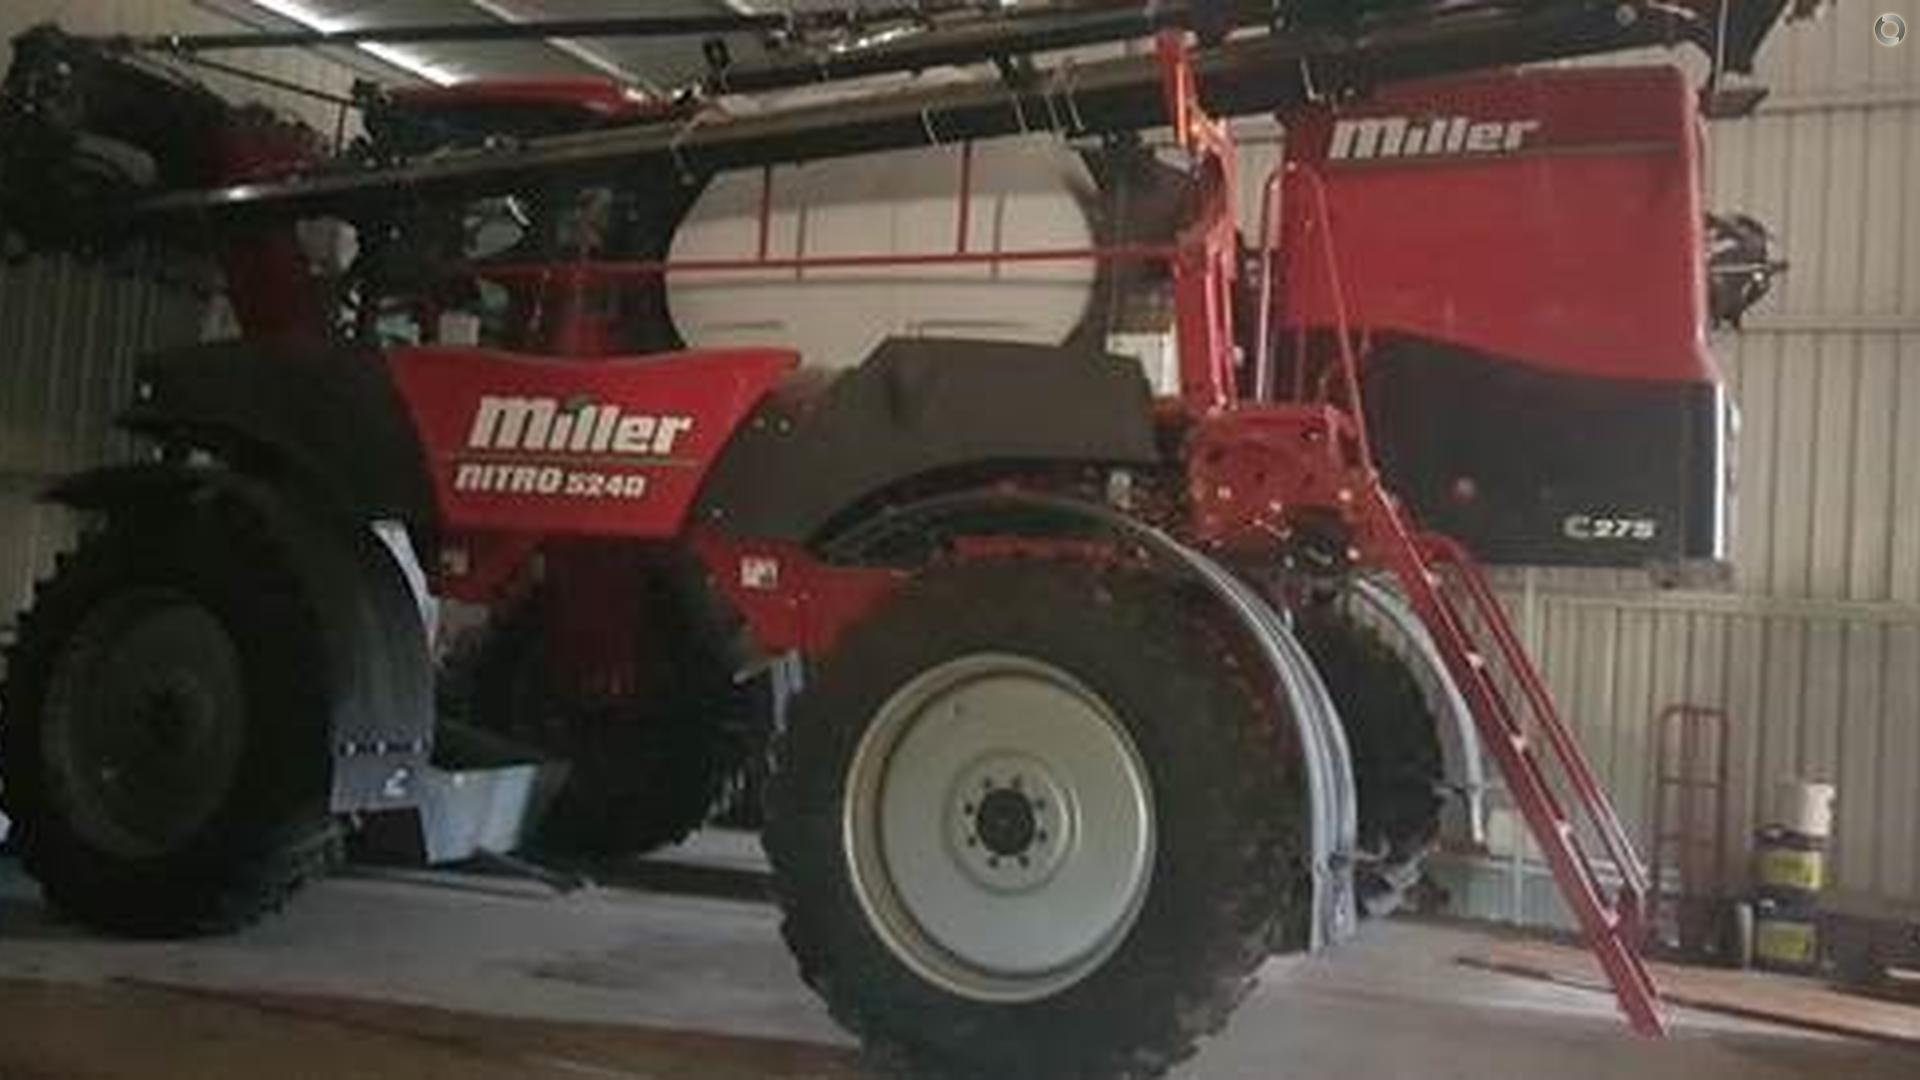 2016 Miller Nitro 5240 Sprayer